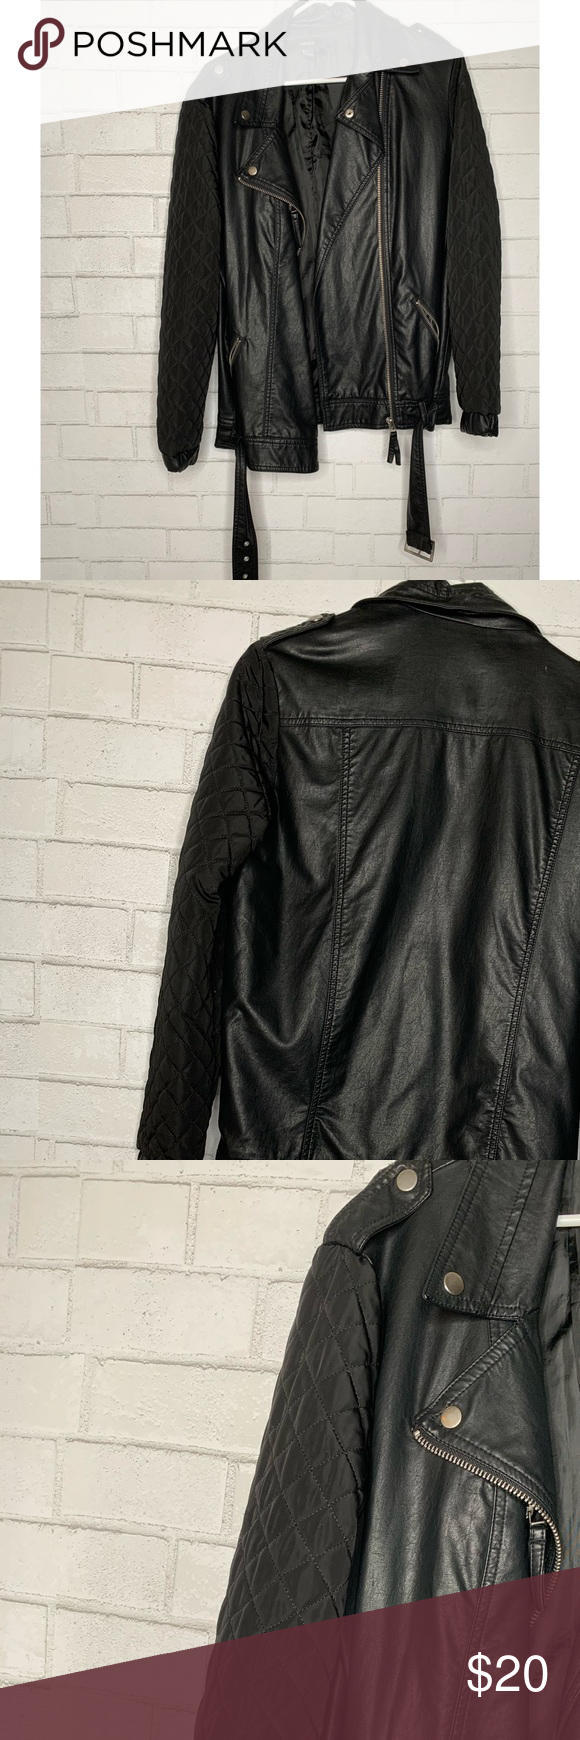 Forever 21 Belted Faux Leather Jacket Forever 21 Belted Faux Leather Jacket Used Size S Forever 21 Jackets Clothes Design Faux Leather Jackets Fashion [ 1740 x 580 Pixel ]